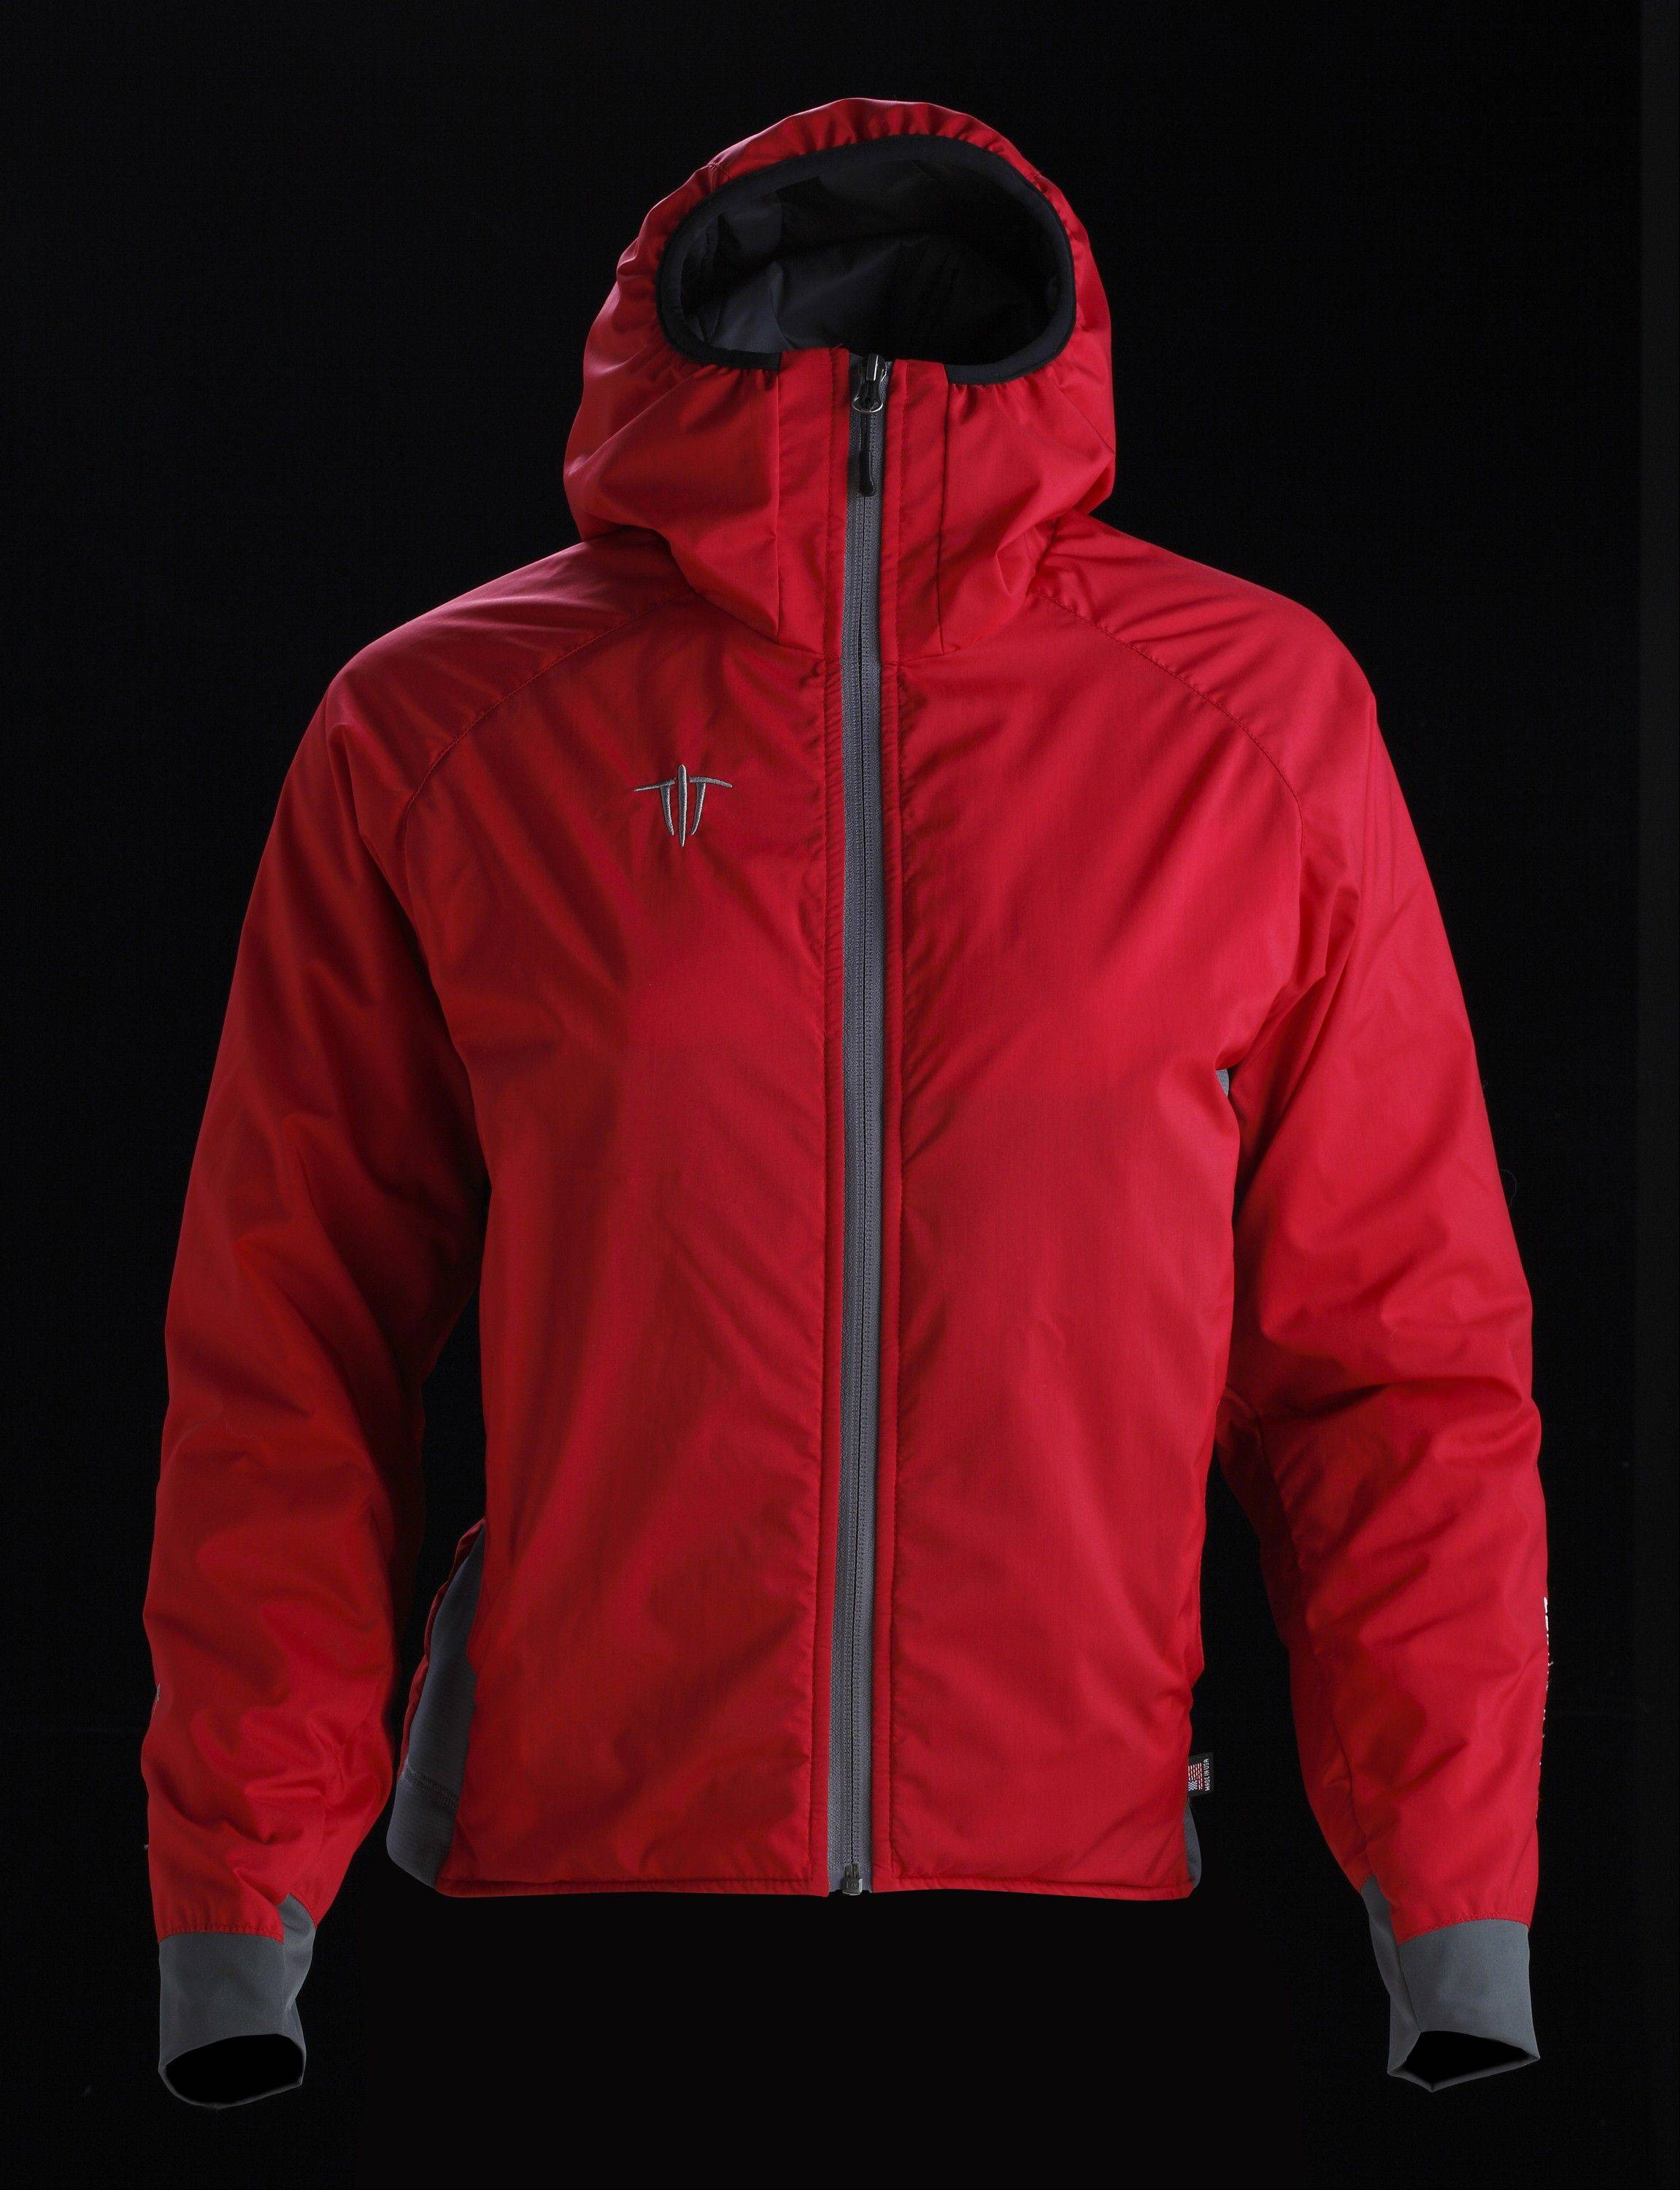 This women's Insulight jacket features an insulated hood.